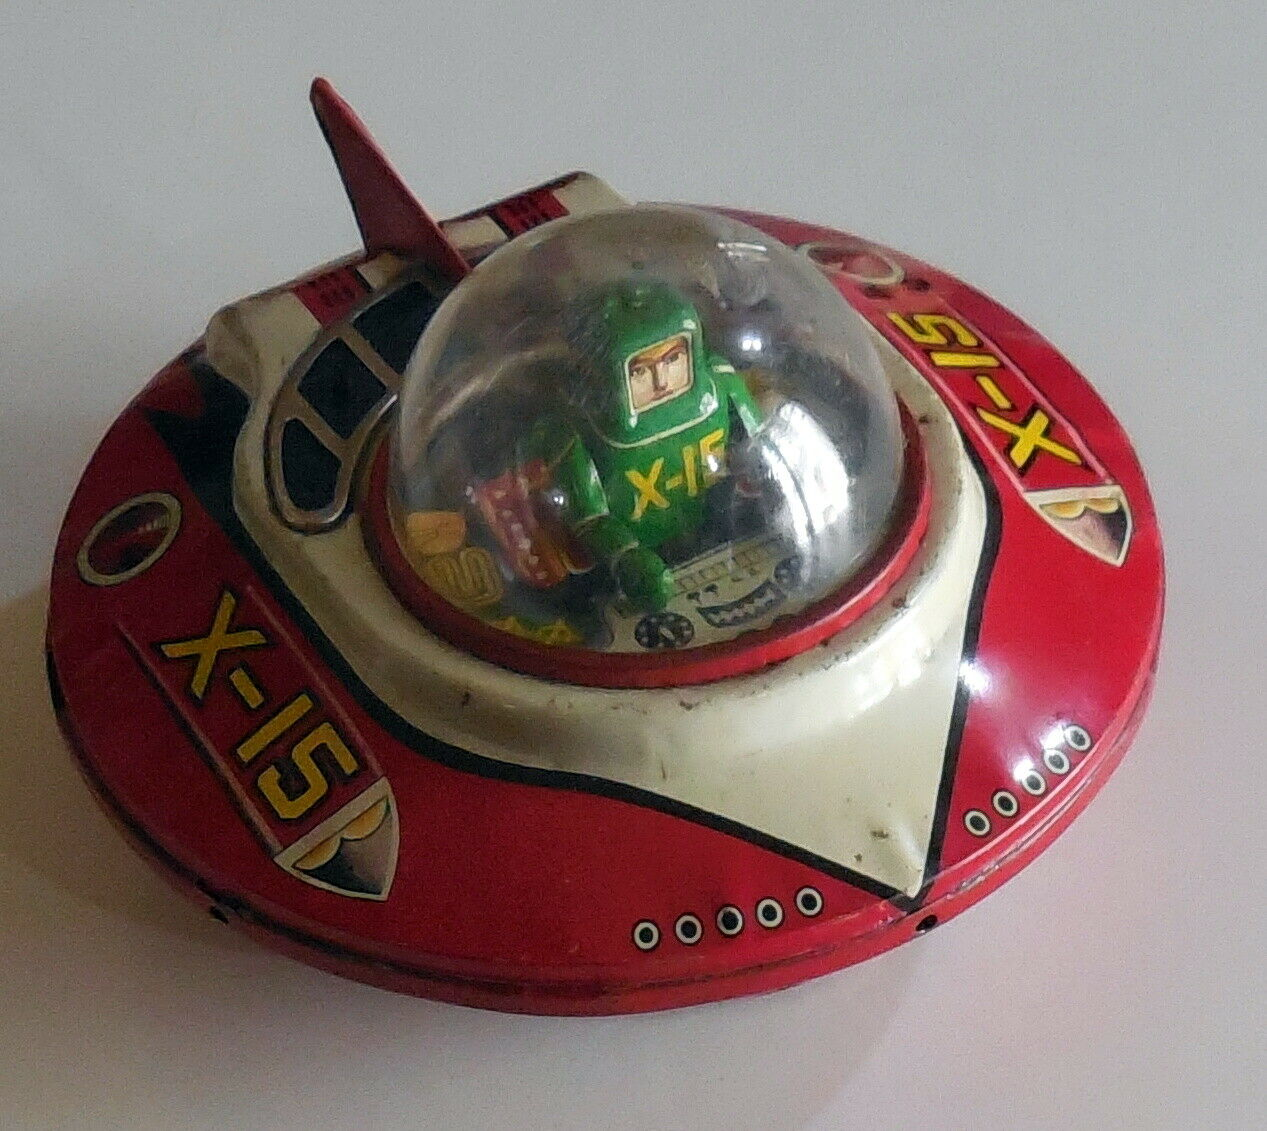 VINTAGE TIN TOY LITHO WIND UP SPACE SHIP X-15 KO MADE JAPAN 1960s ufo spaceman